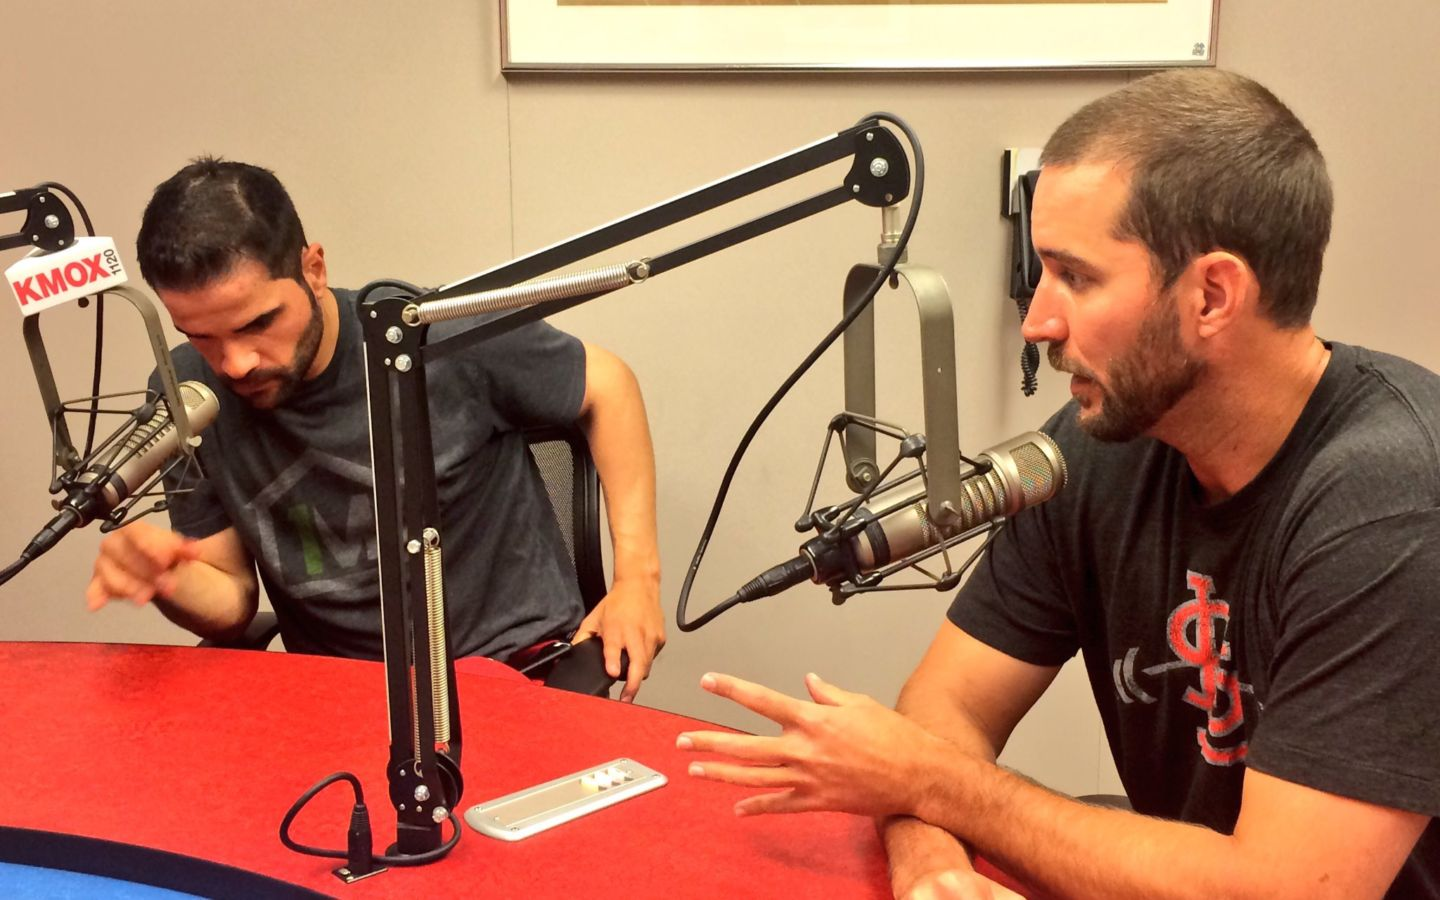 Adam Wainwright & Jaime Garcia, St. Louis Cardinals, Interview with Kyle McClellan